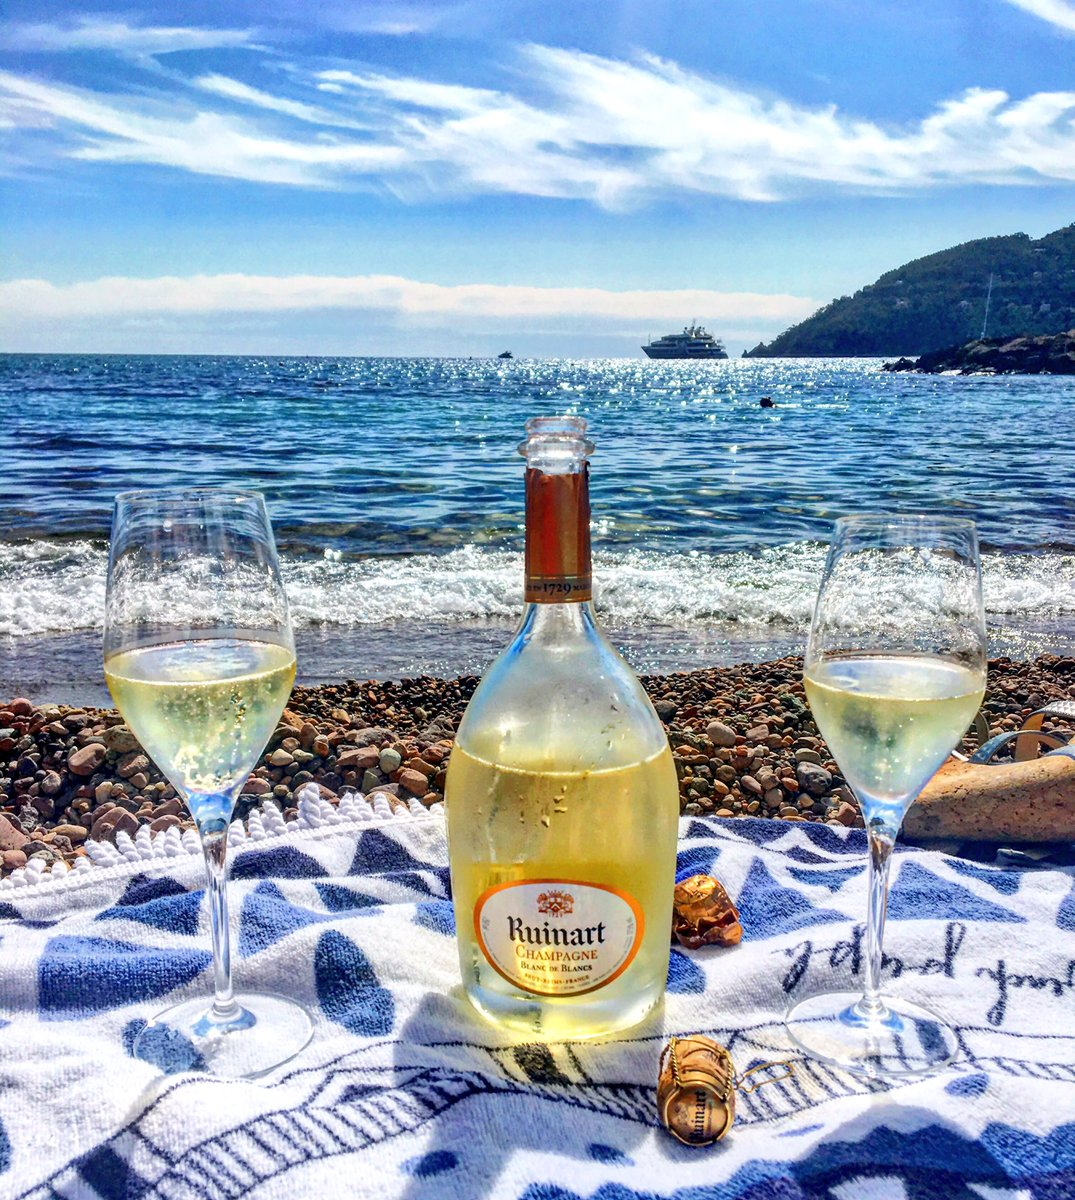 Days like these   #champagne #travel #wine #frenchriviera #cannes <br>http://pic.twitter.com/rOC9b53Voe